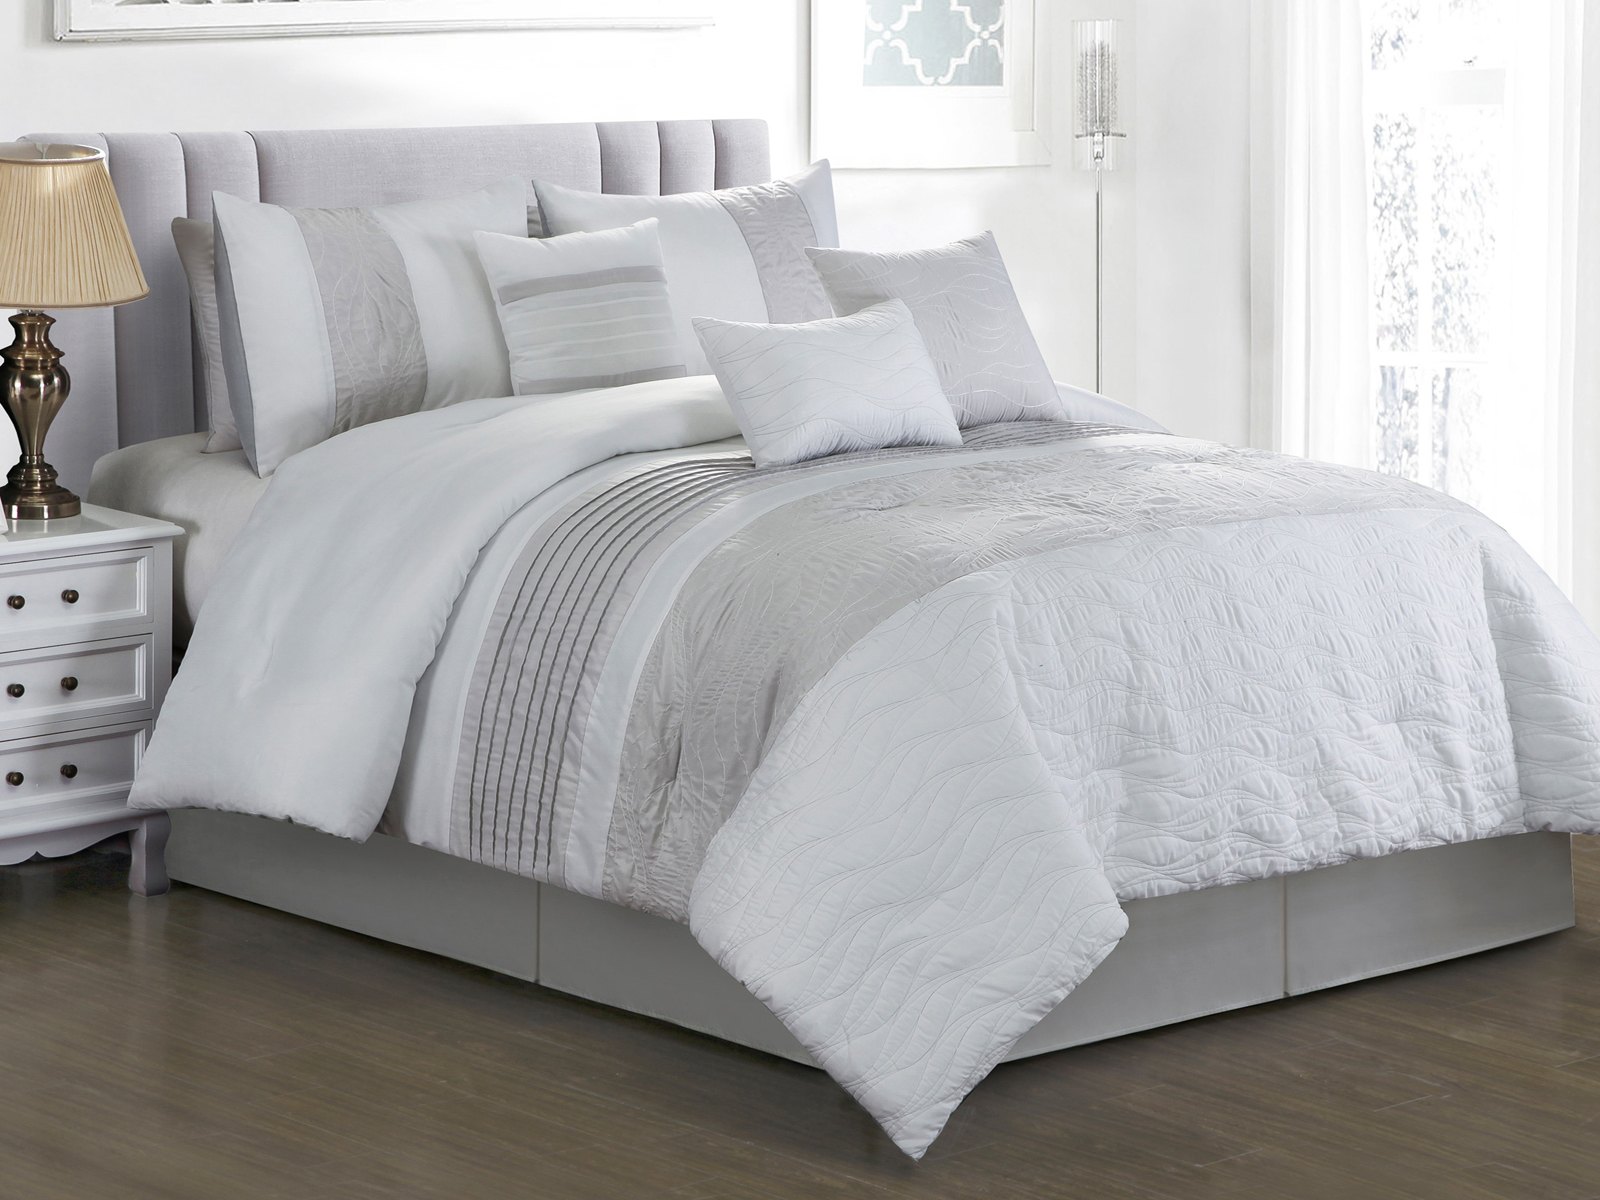 11 pc keani quilted abstract wavy lines embroidery pleated comforter curtain set white gray king walmart com